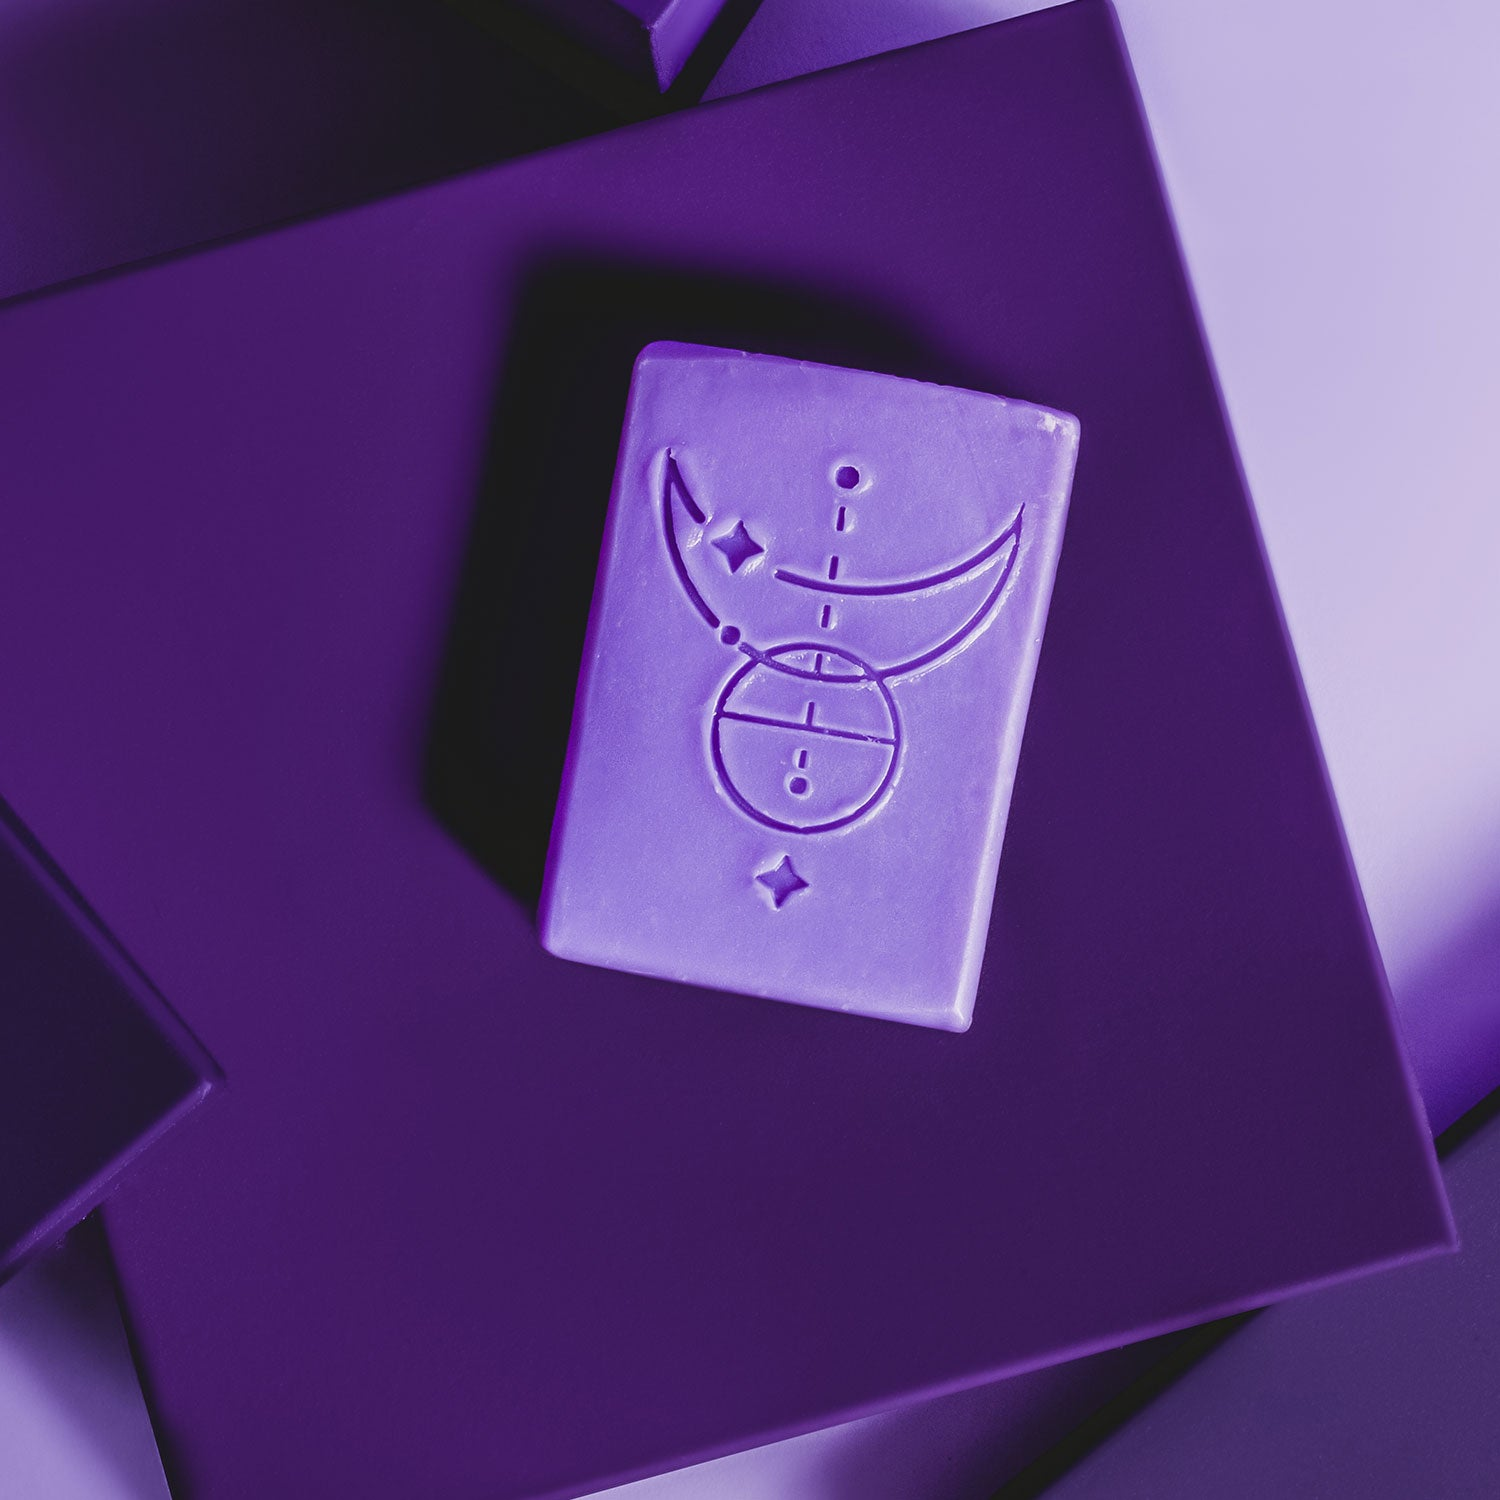 A bar of Comfort soap on a purple background